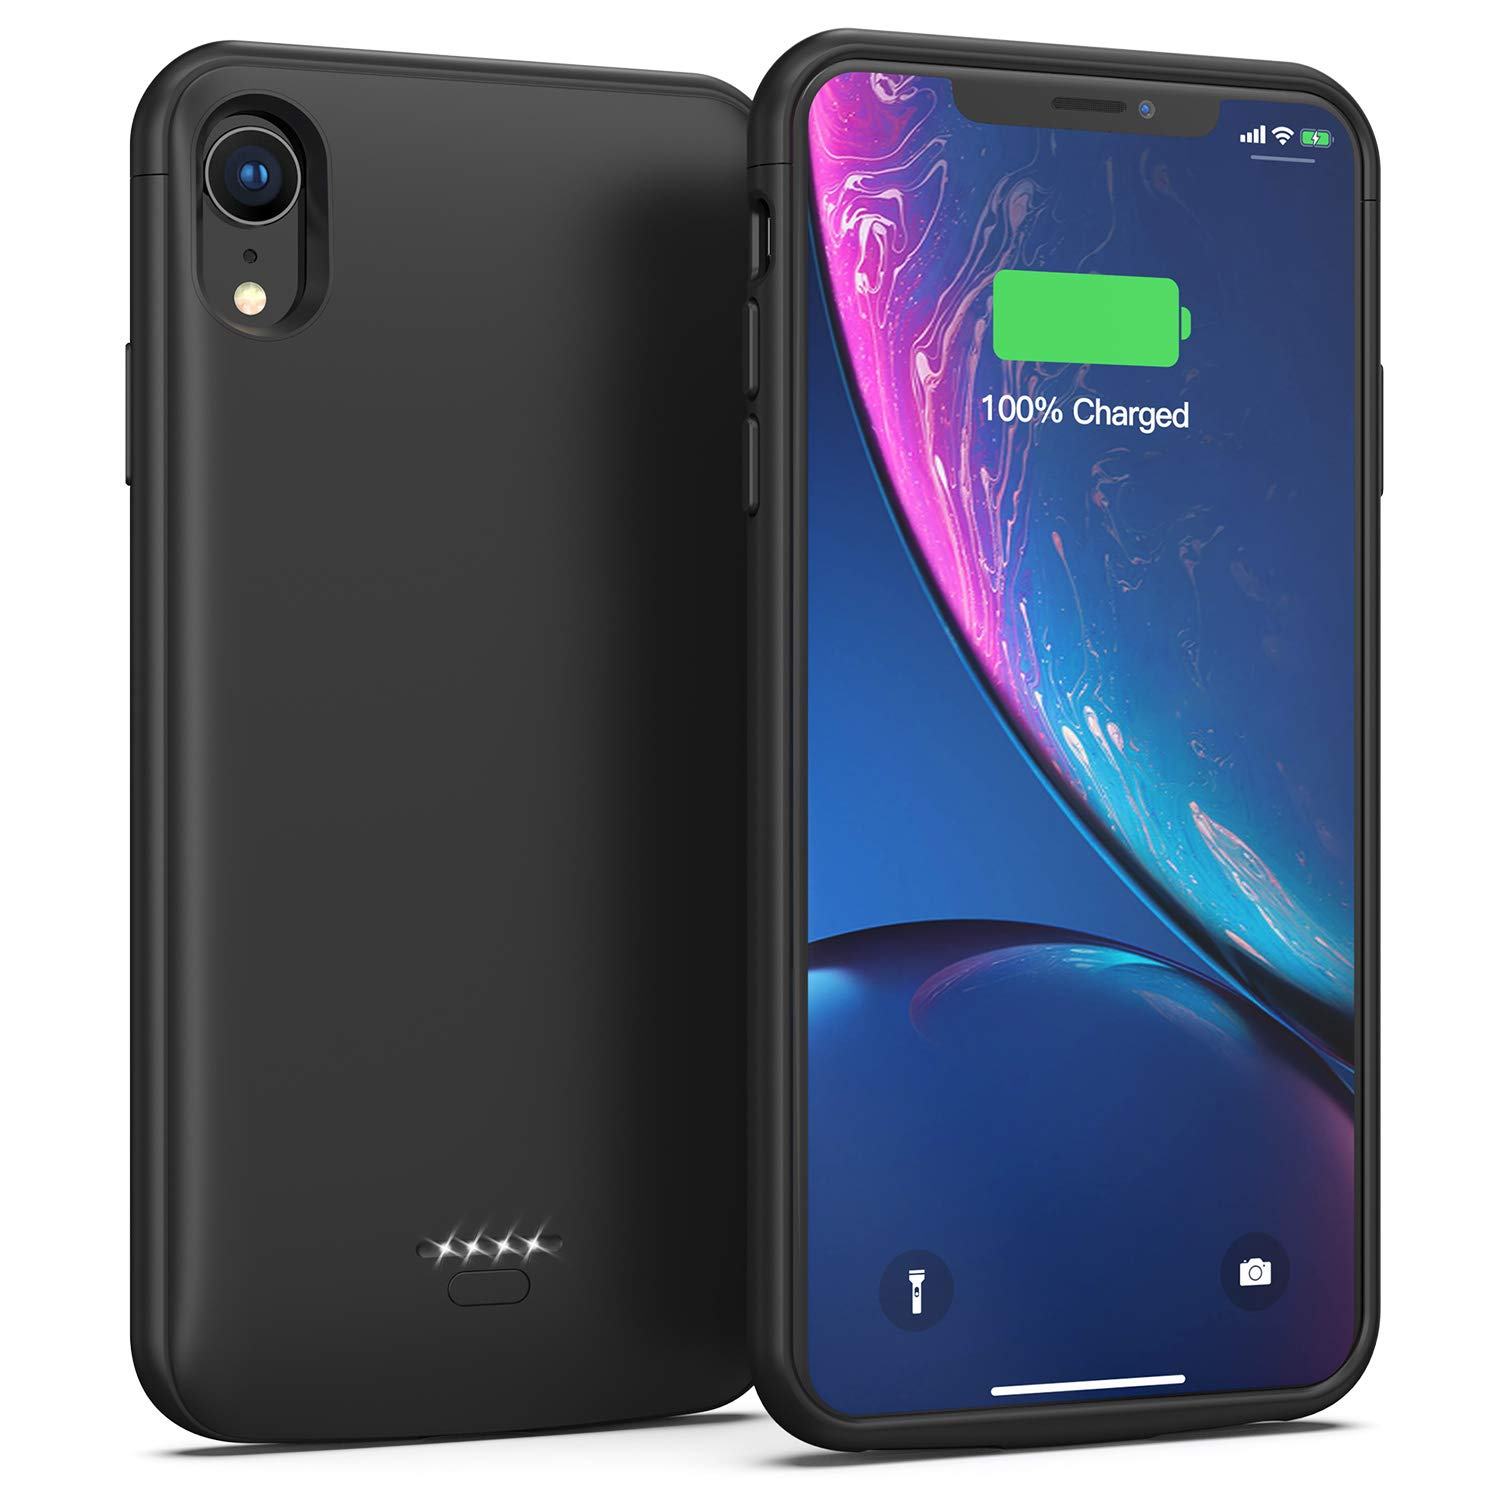 Battery Case for iPhone XR, 5000mAh Charging Case Protective Charger Case for iPhone XR (Black) by Lonlif (Image #1)